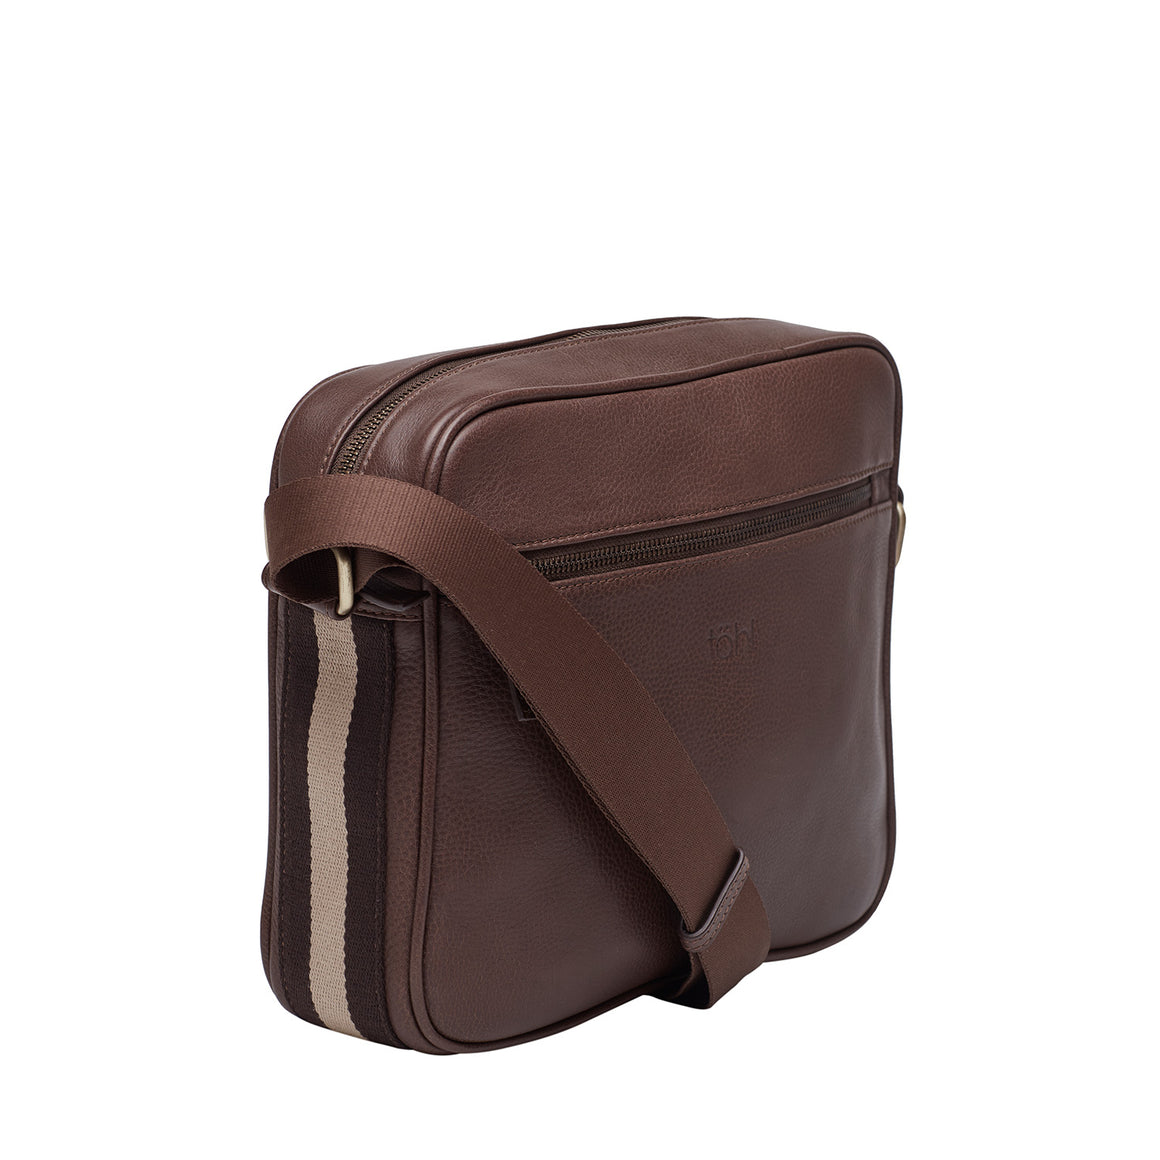 MS 0005 - TOHL CORTE MEN'S CROSSBODY & MESSENGER - MUD